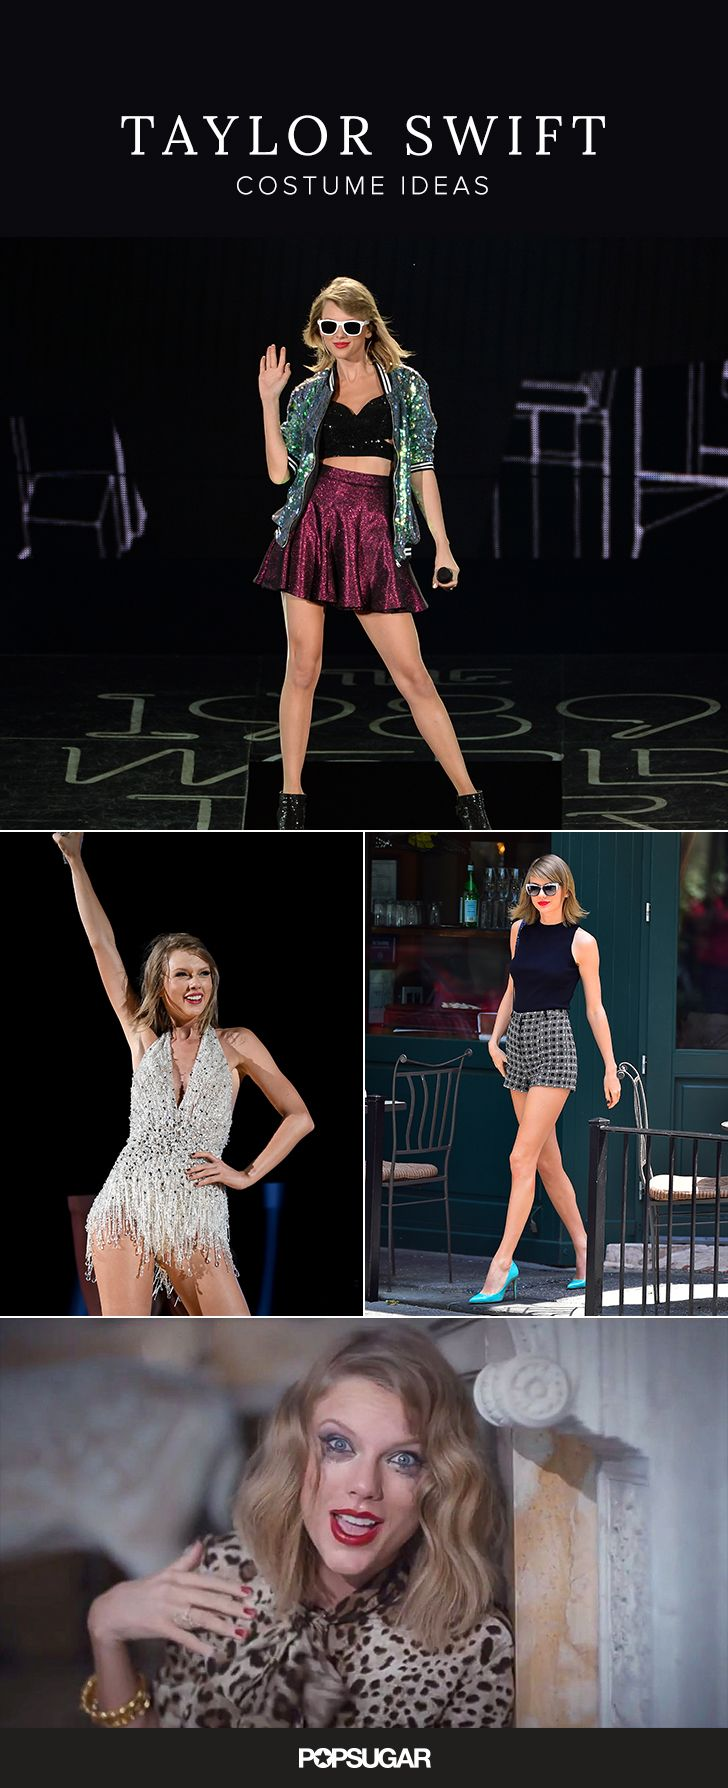 If ever there was a time to channel Taylor Swift for Halloween, this is it!